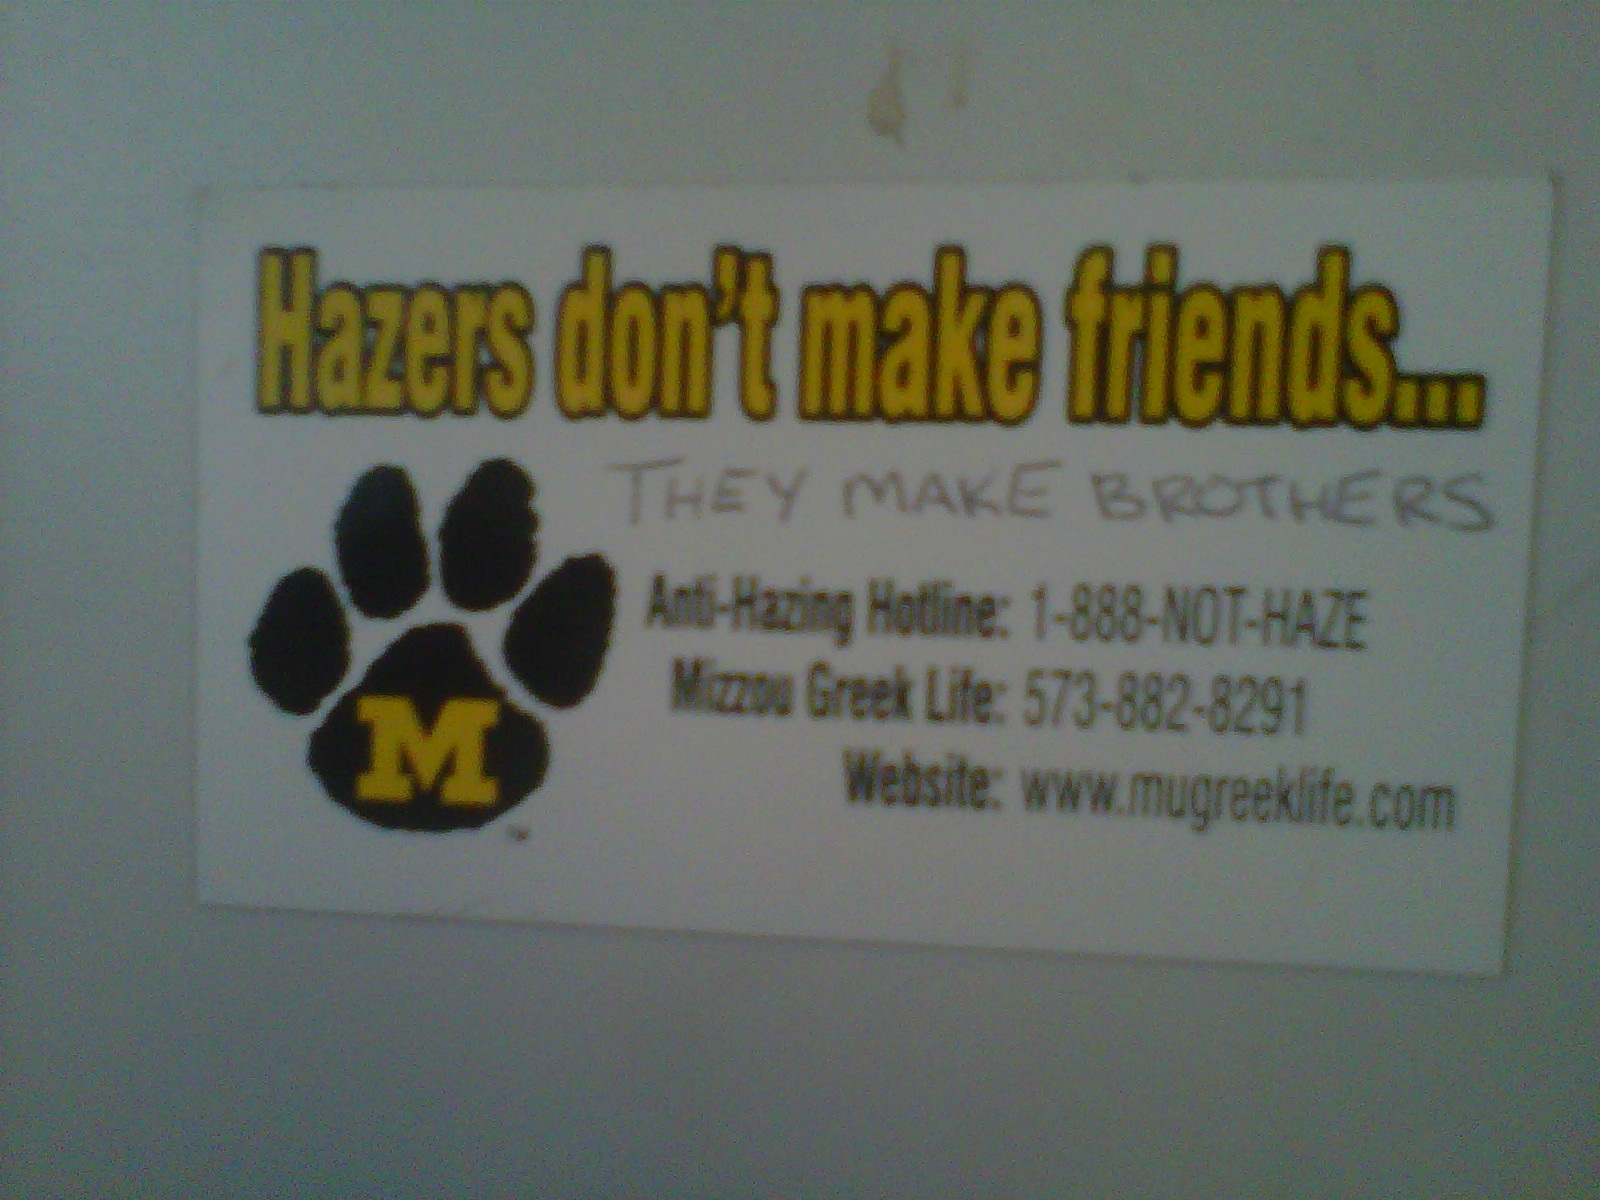 Hazers don't make friends...they make brothers. TFM.